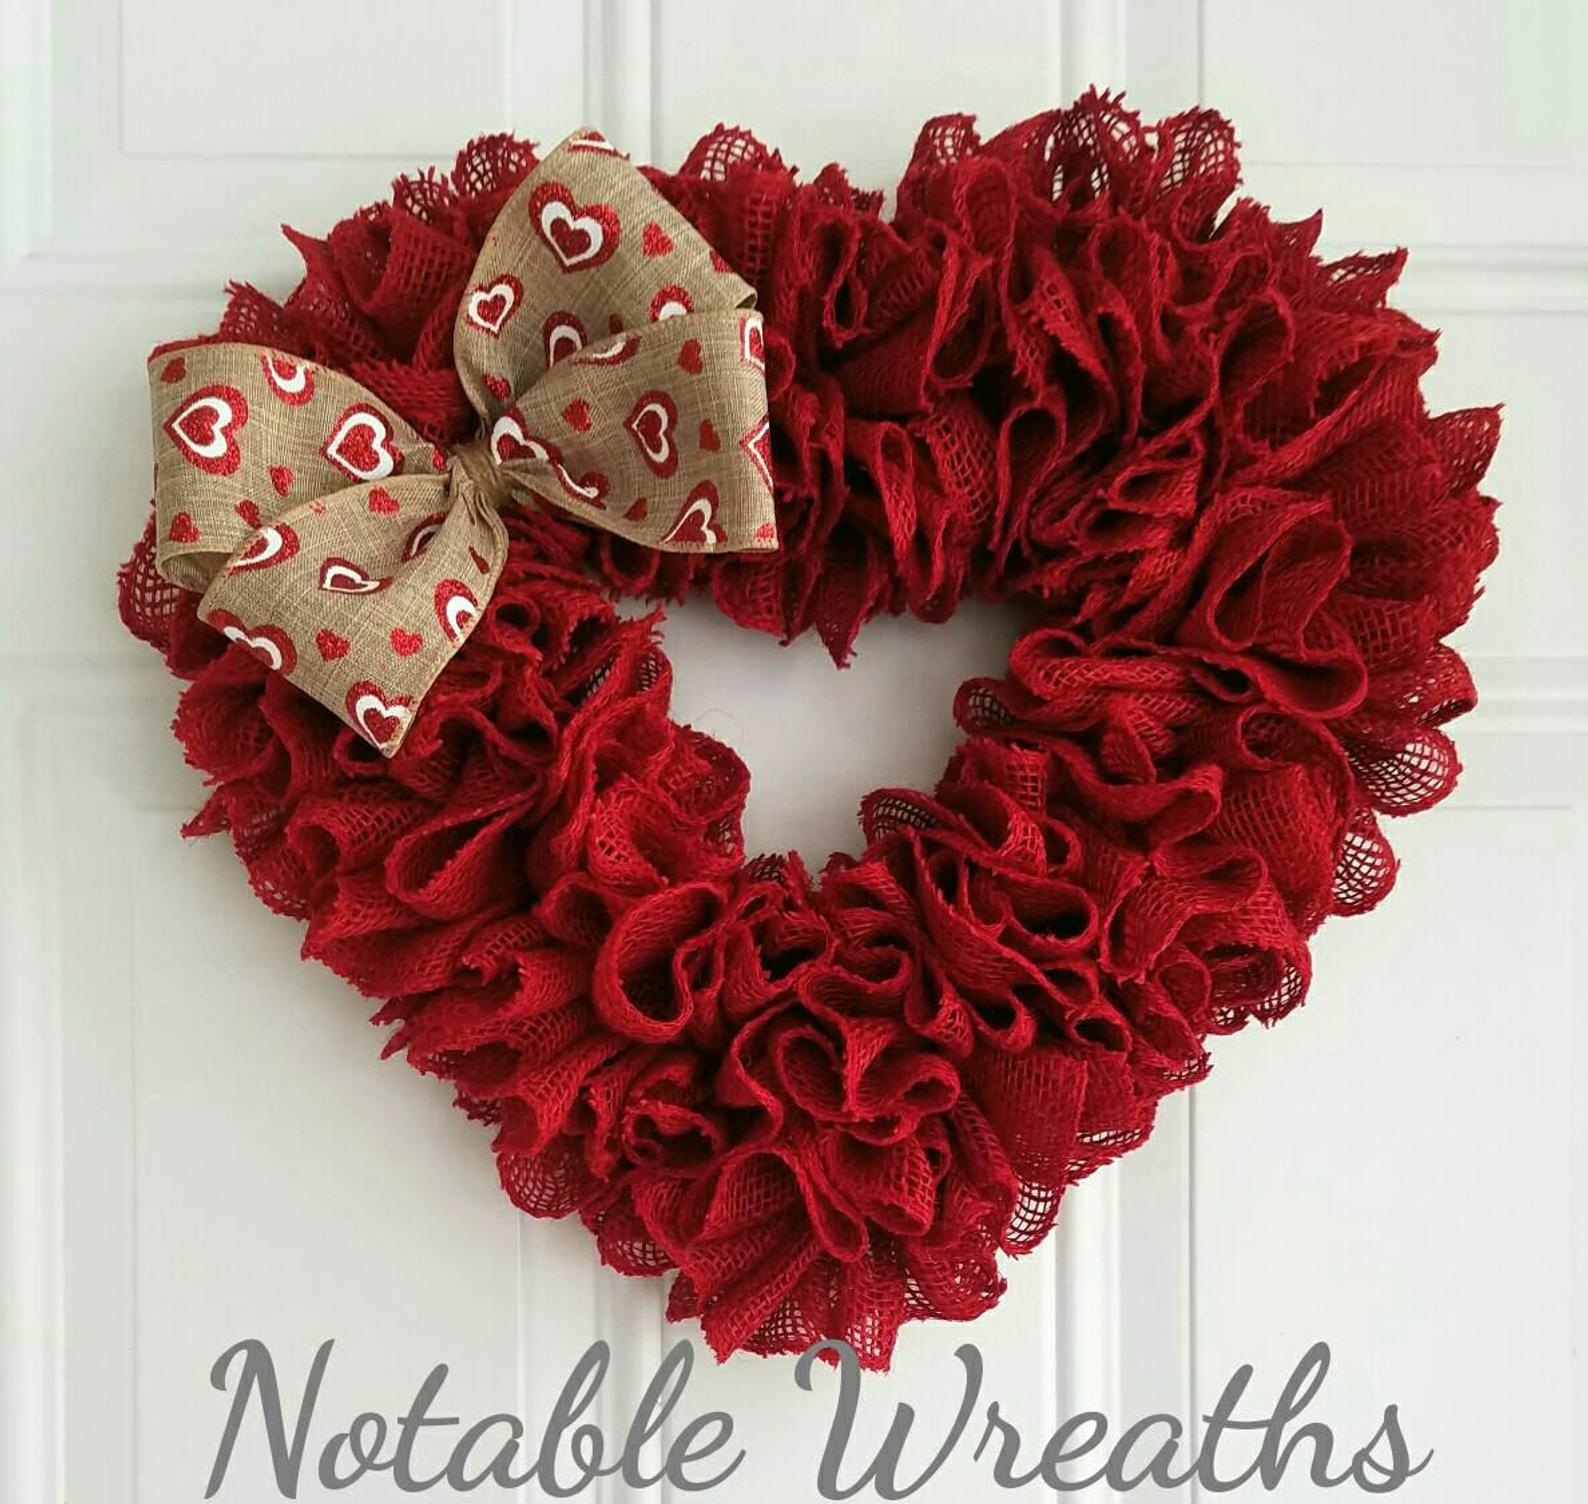 Burlap red heart shaped wreath